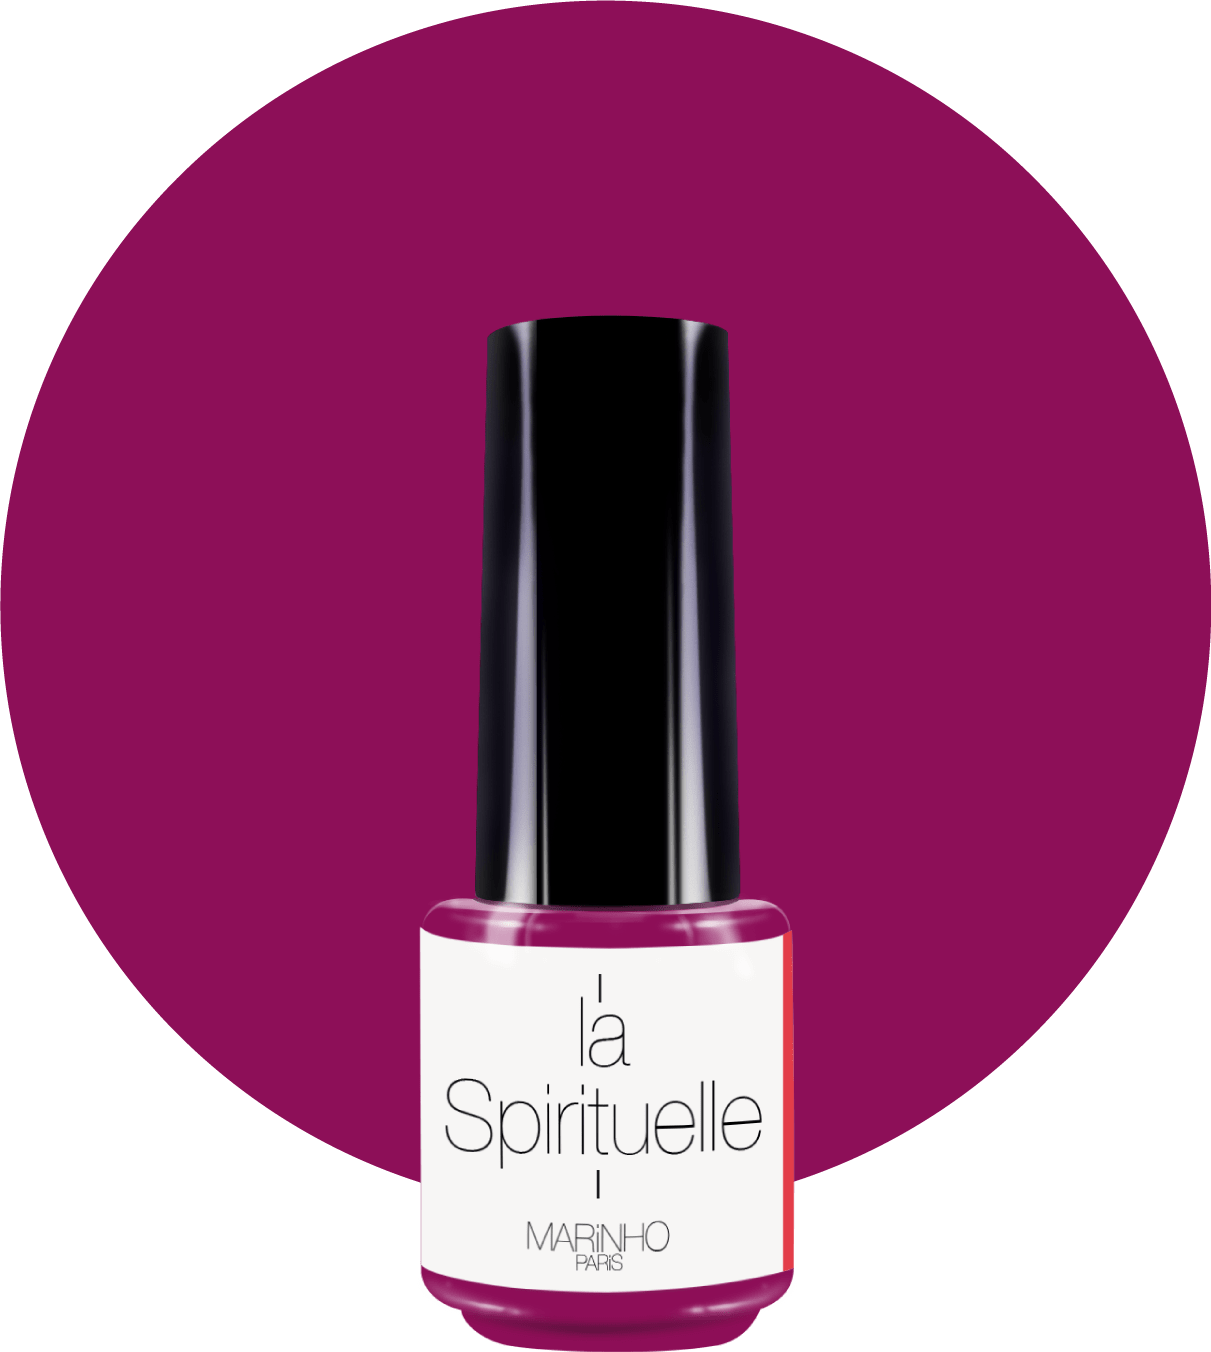 vernis semi-permanent couleur fruits rouges marinho paris sur rond couleur fruits rouge